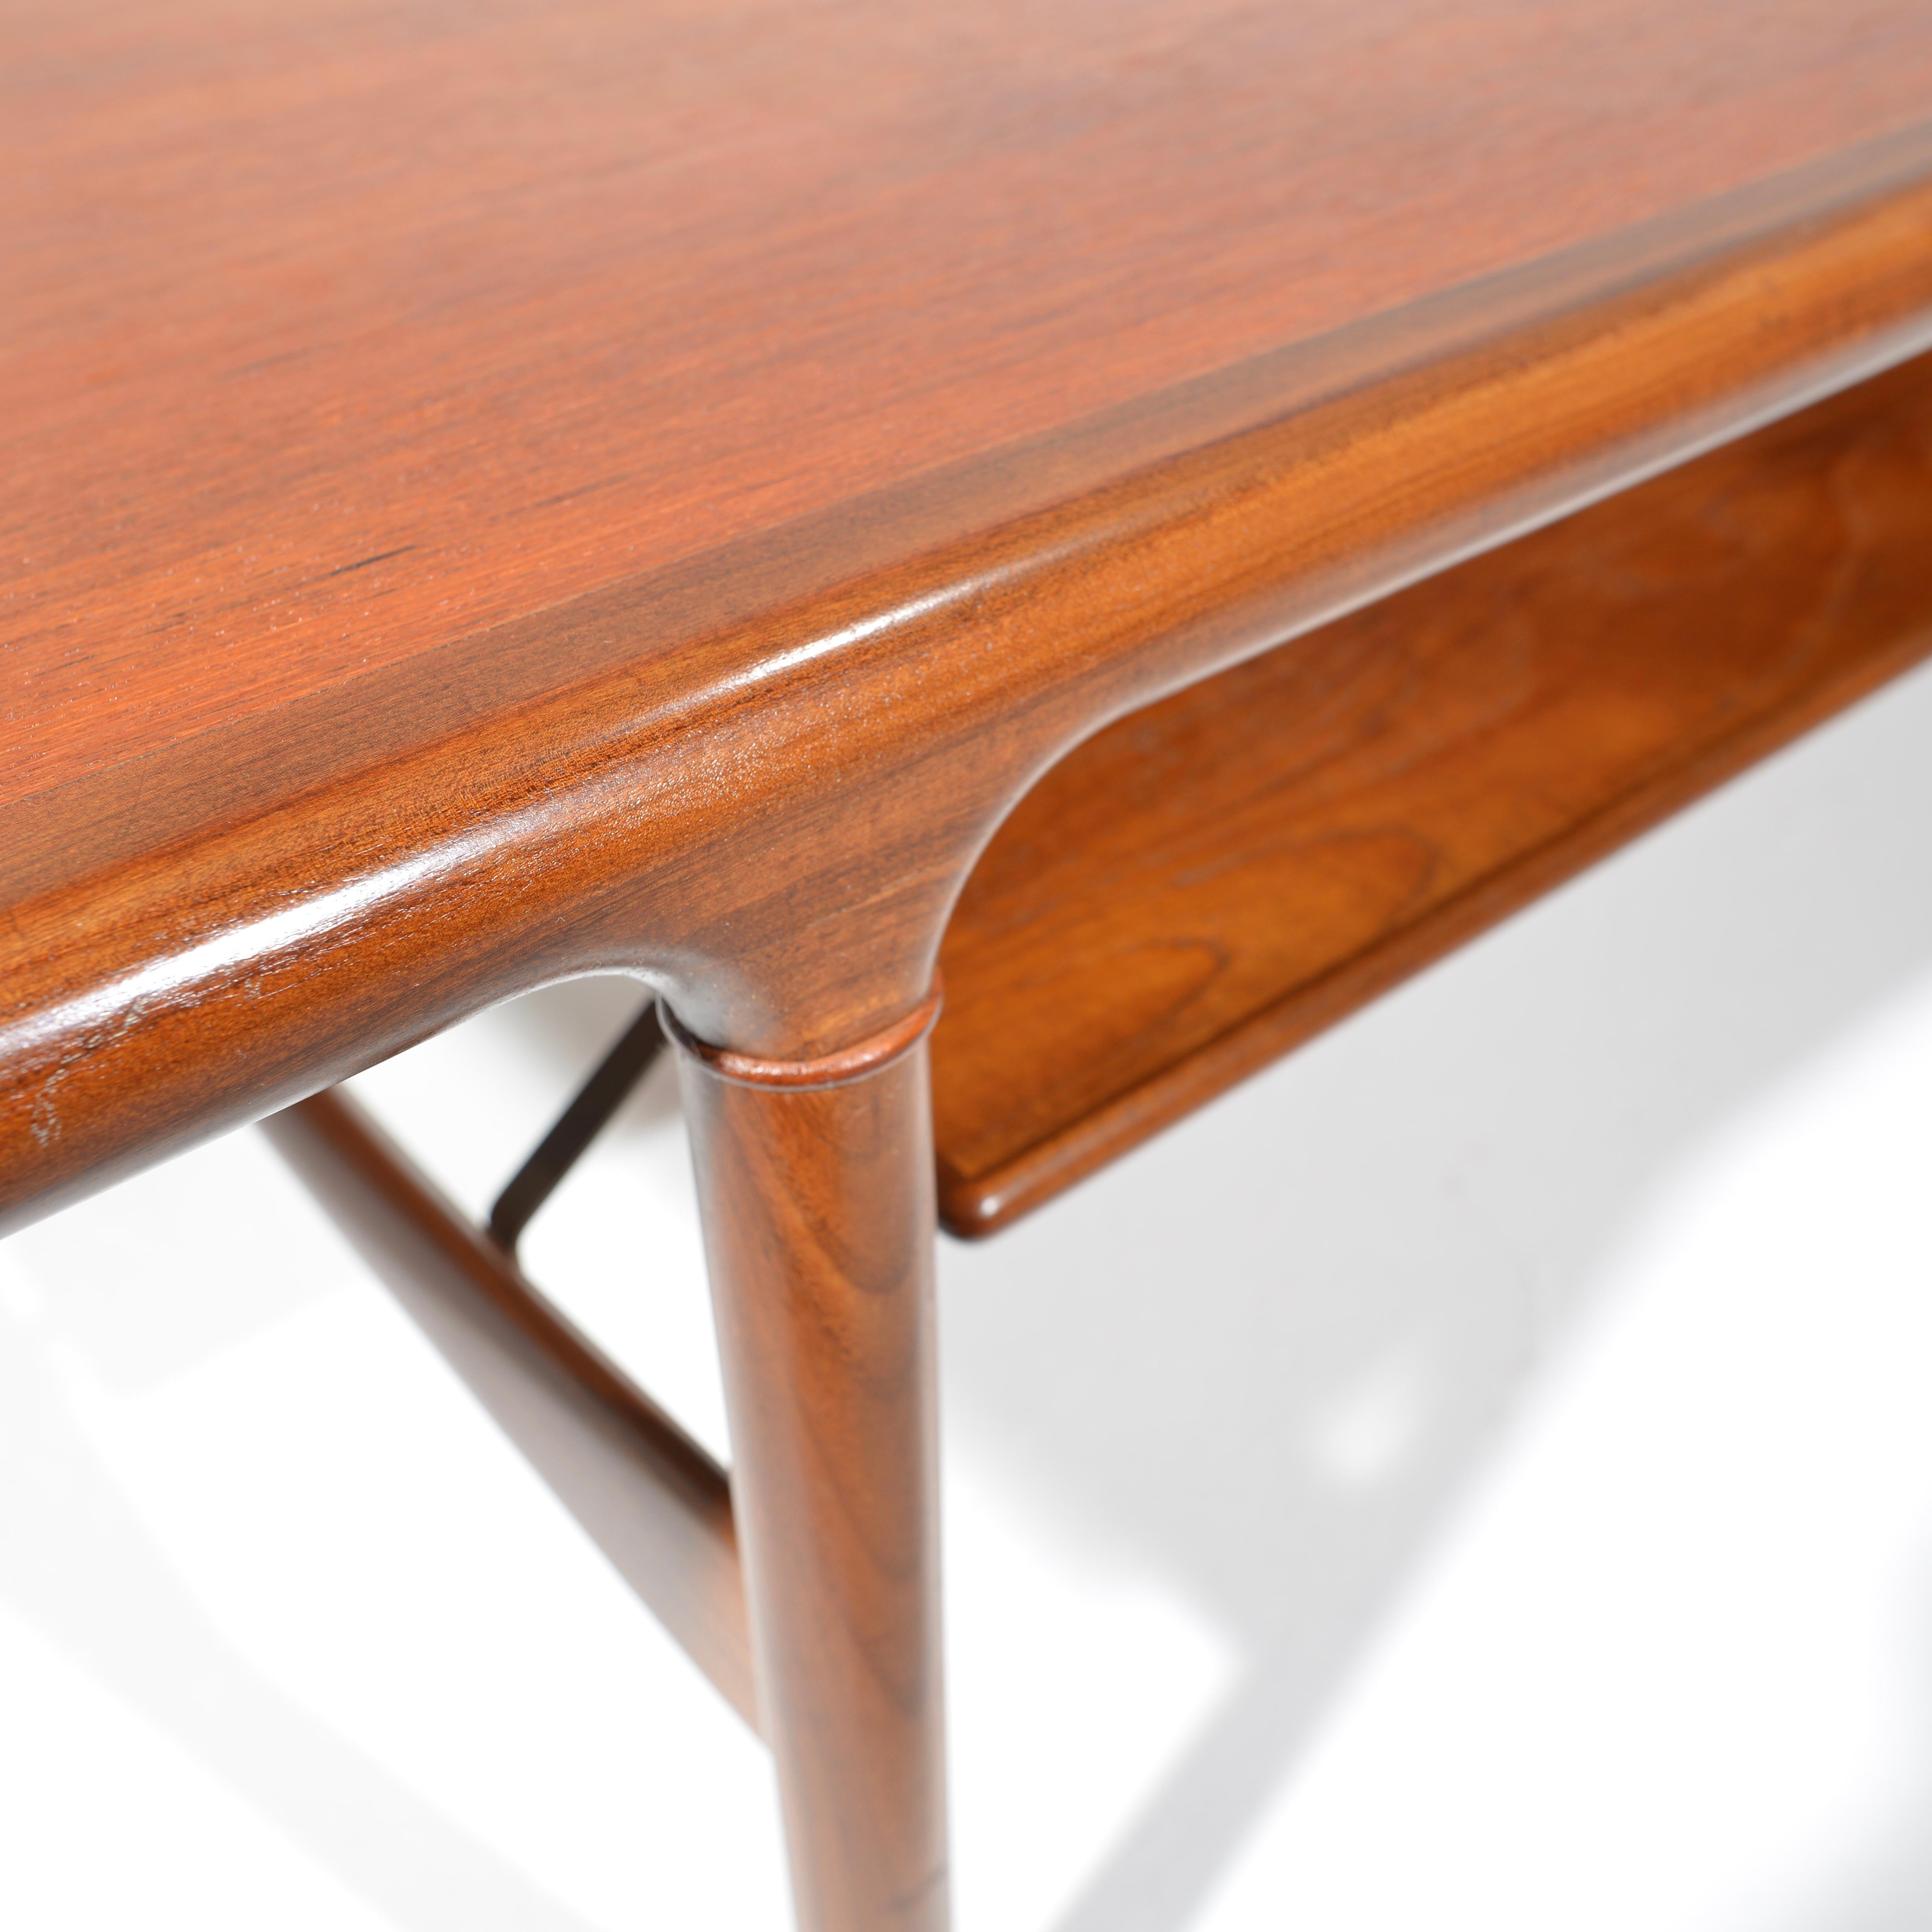 Rare Large Midcentury Extending Teak Coffee Table With Floating Shelf